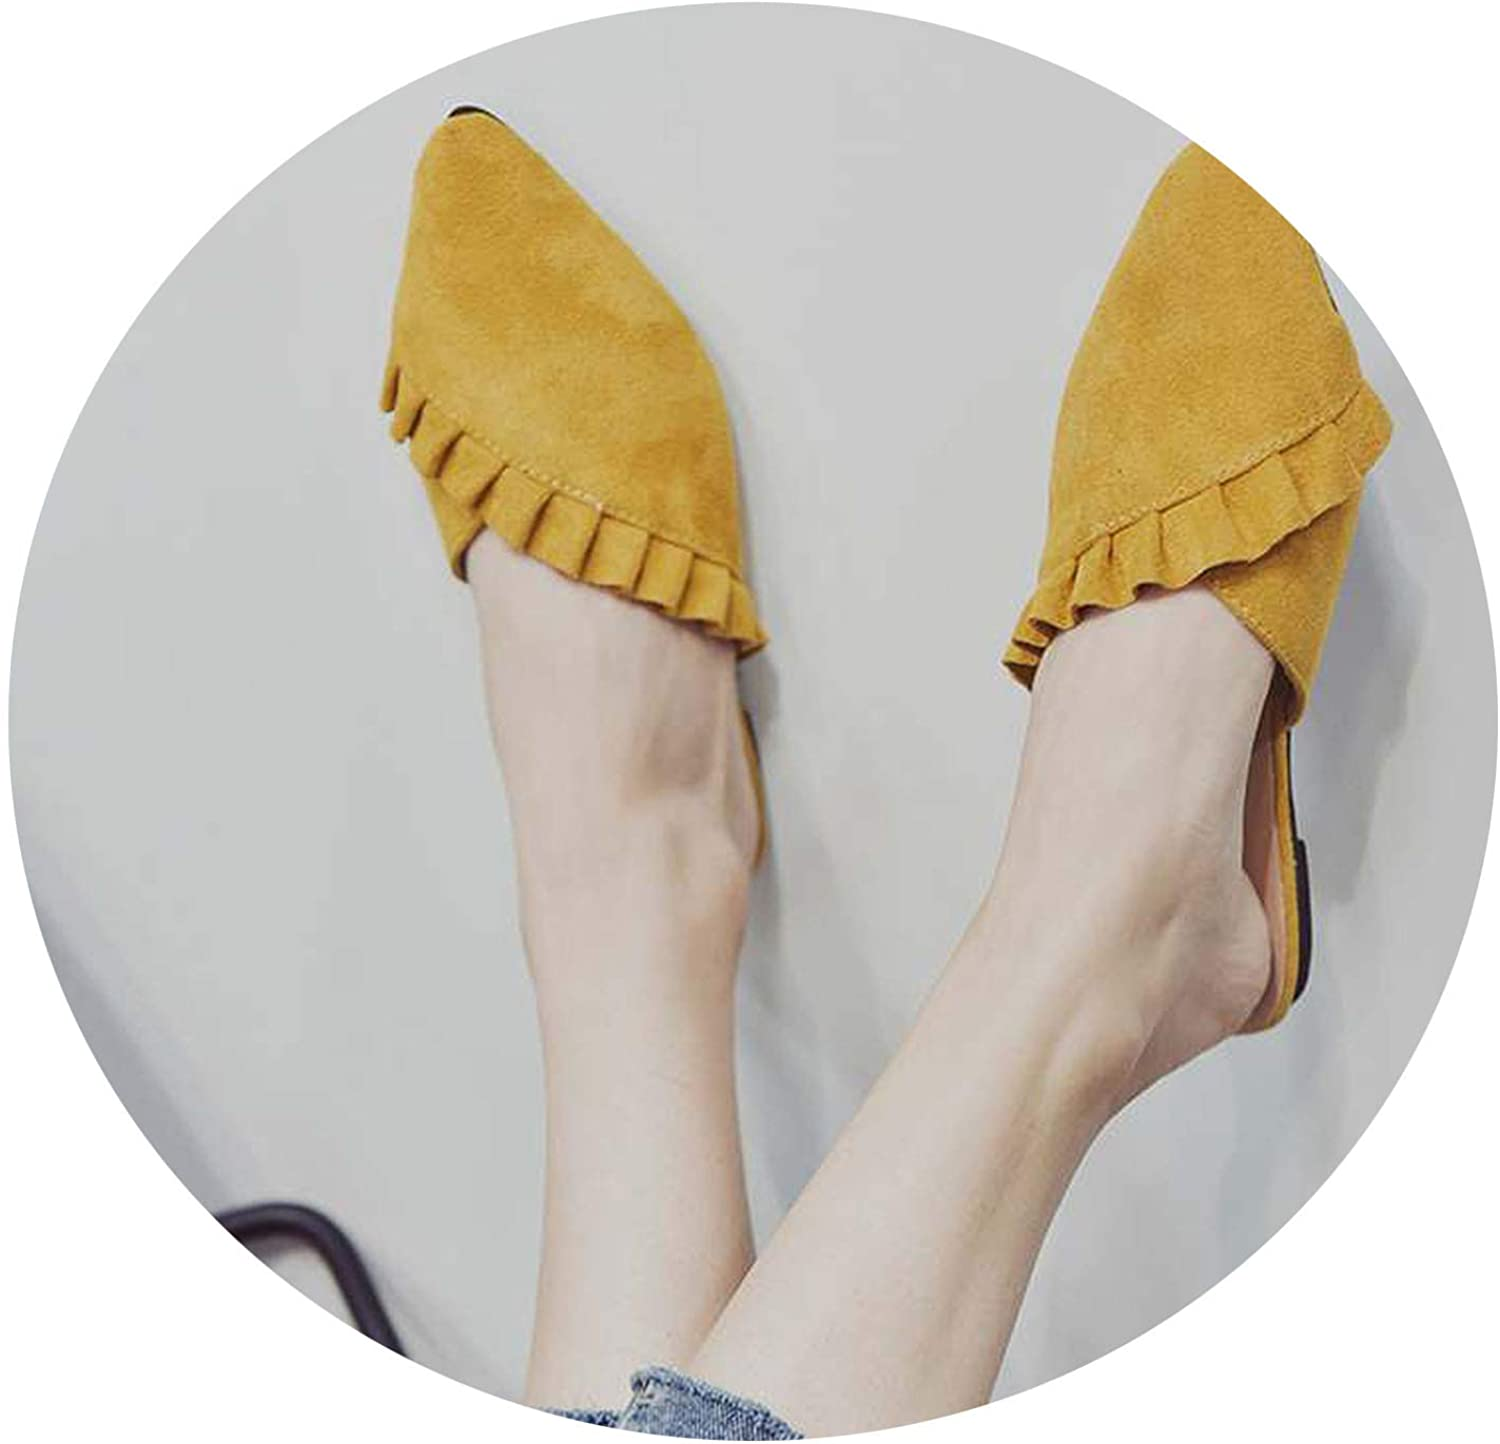 Monicas-house Women Slippers Flat Women shoes Slip On Flat Mules Fashion Ruffles Ladies shoes Fabric Platform Loafer Flip Flop